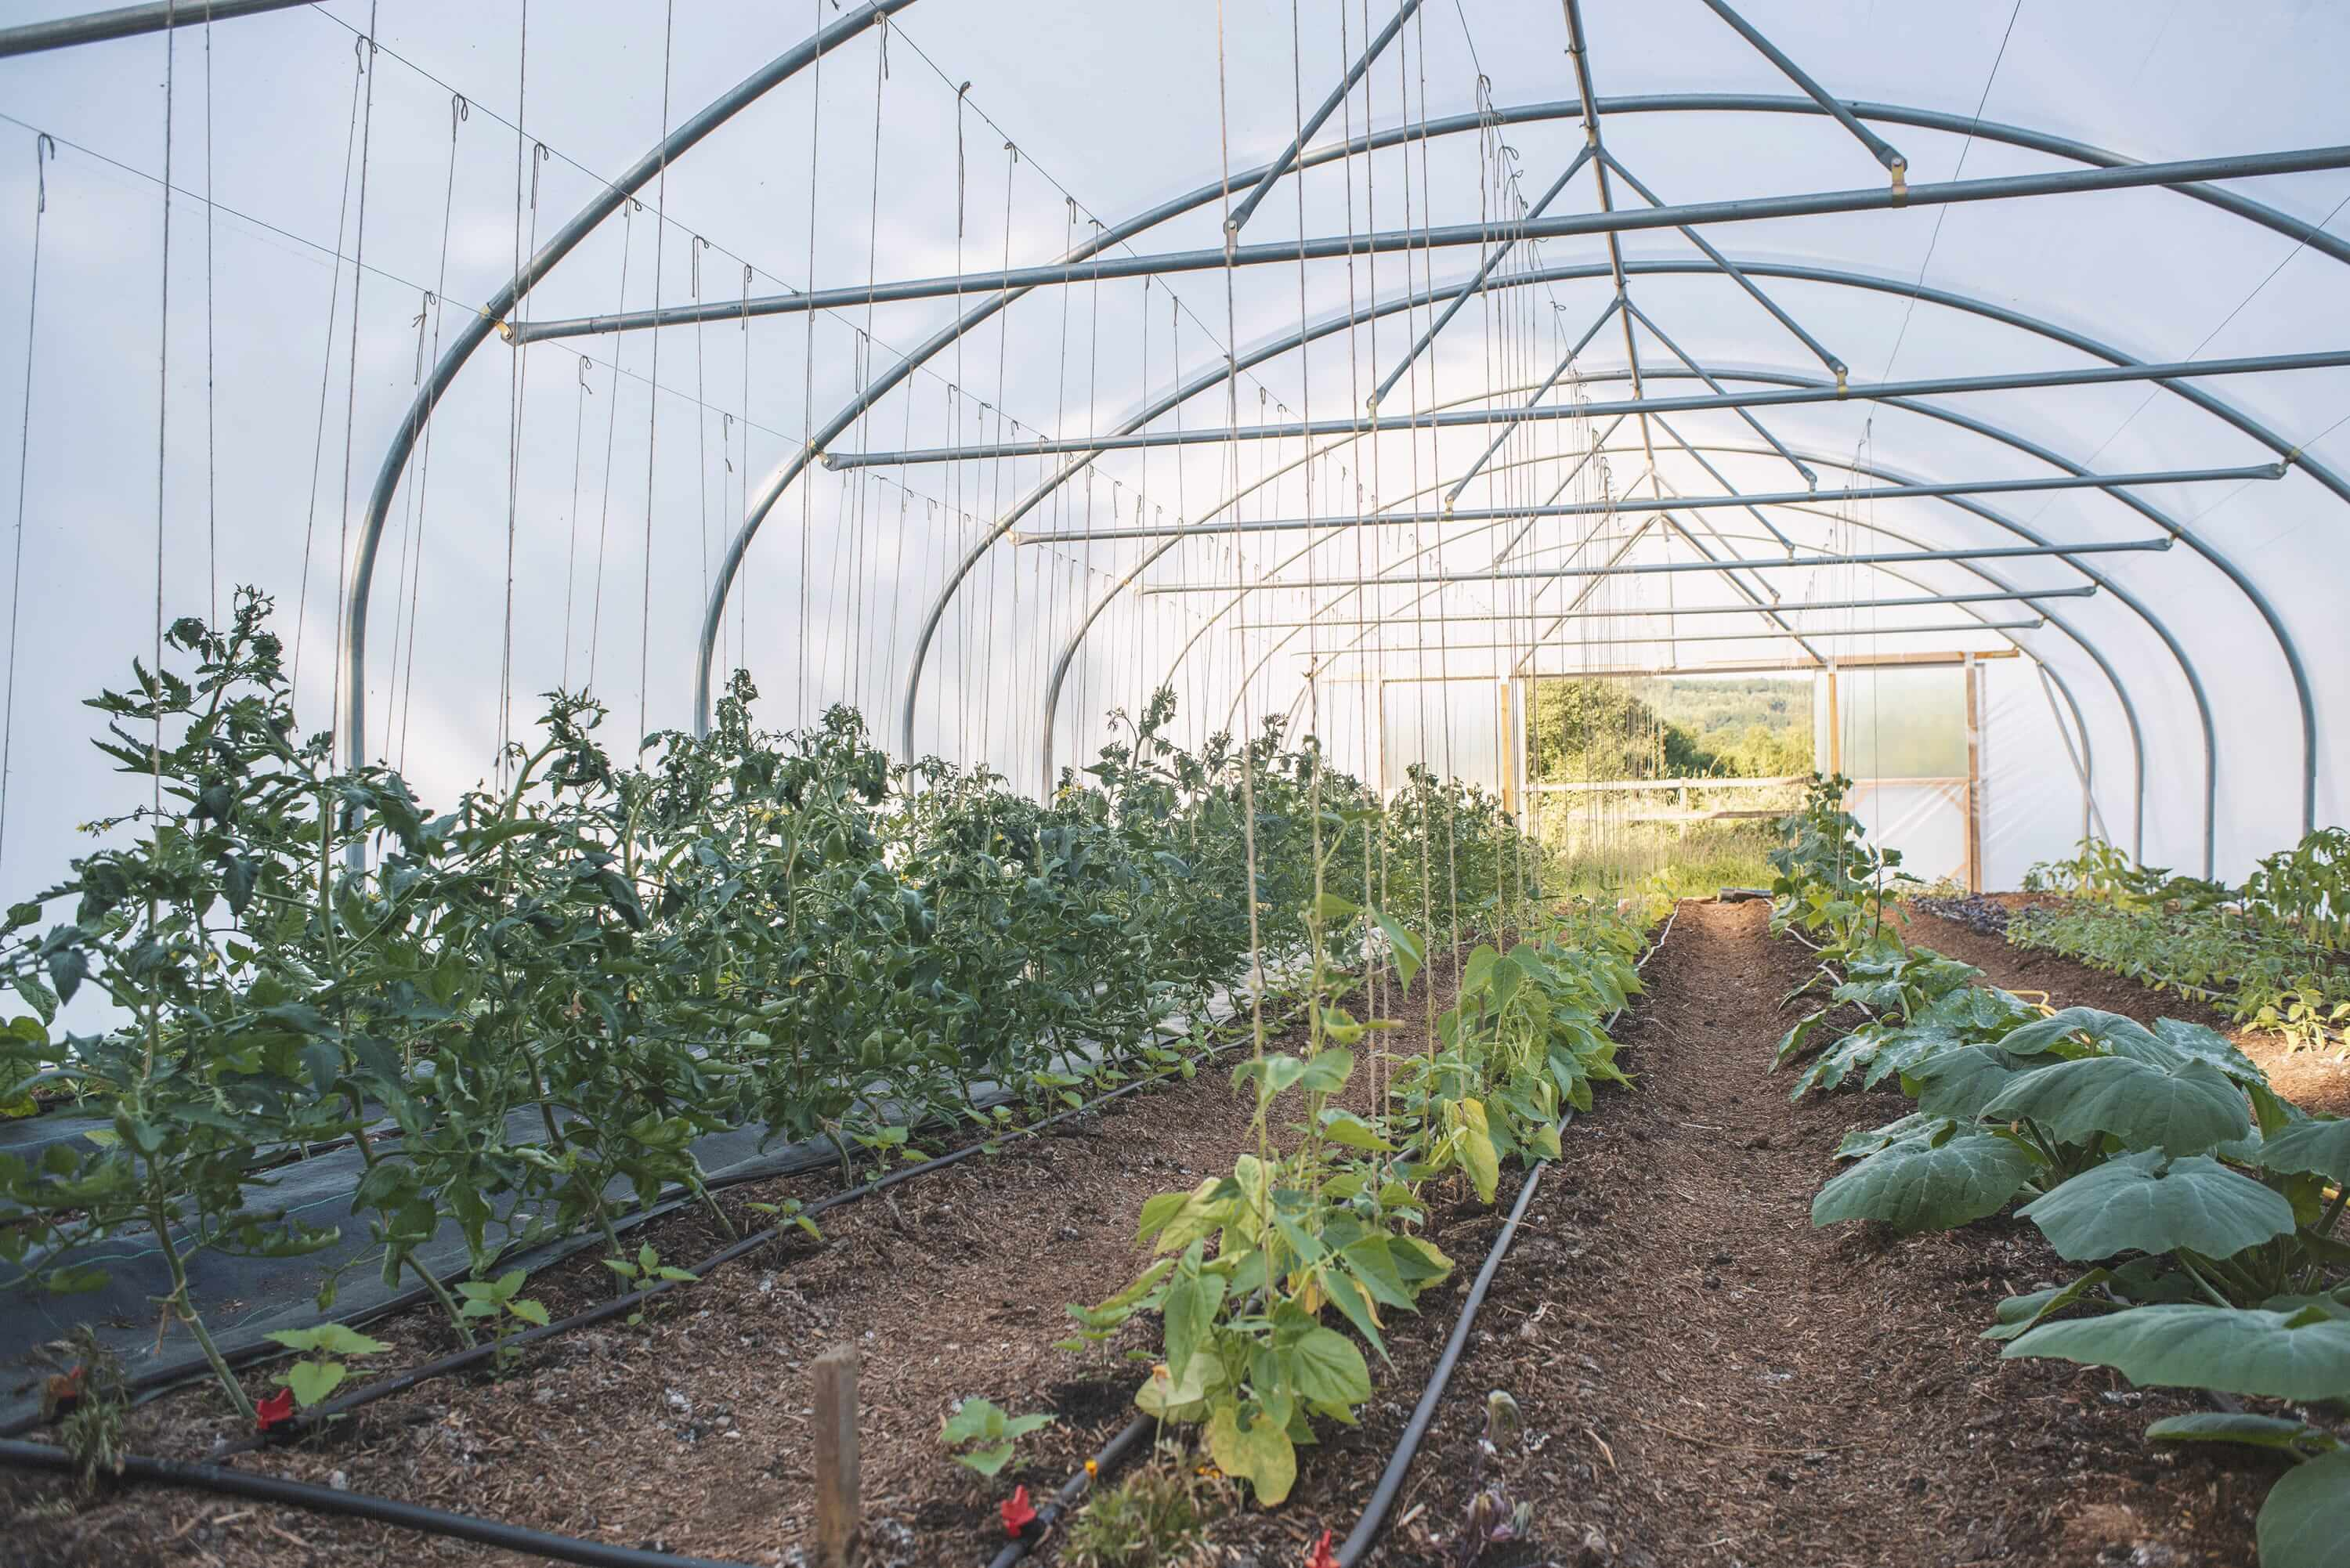 Vegetables growing in polytunnels